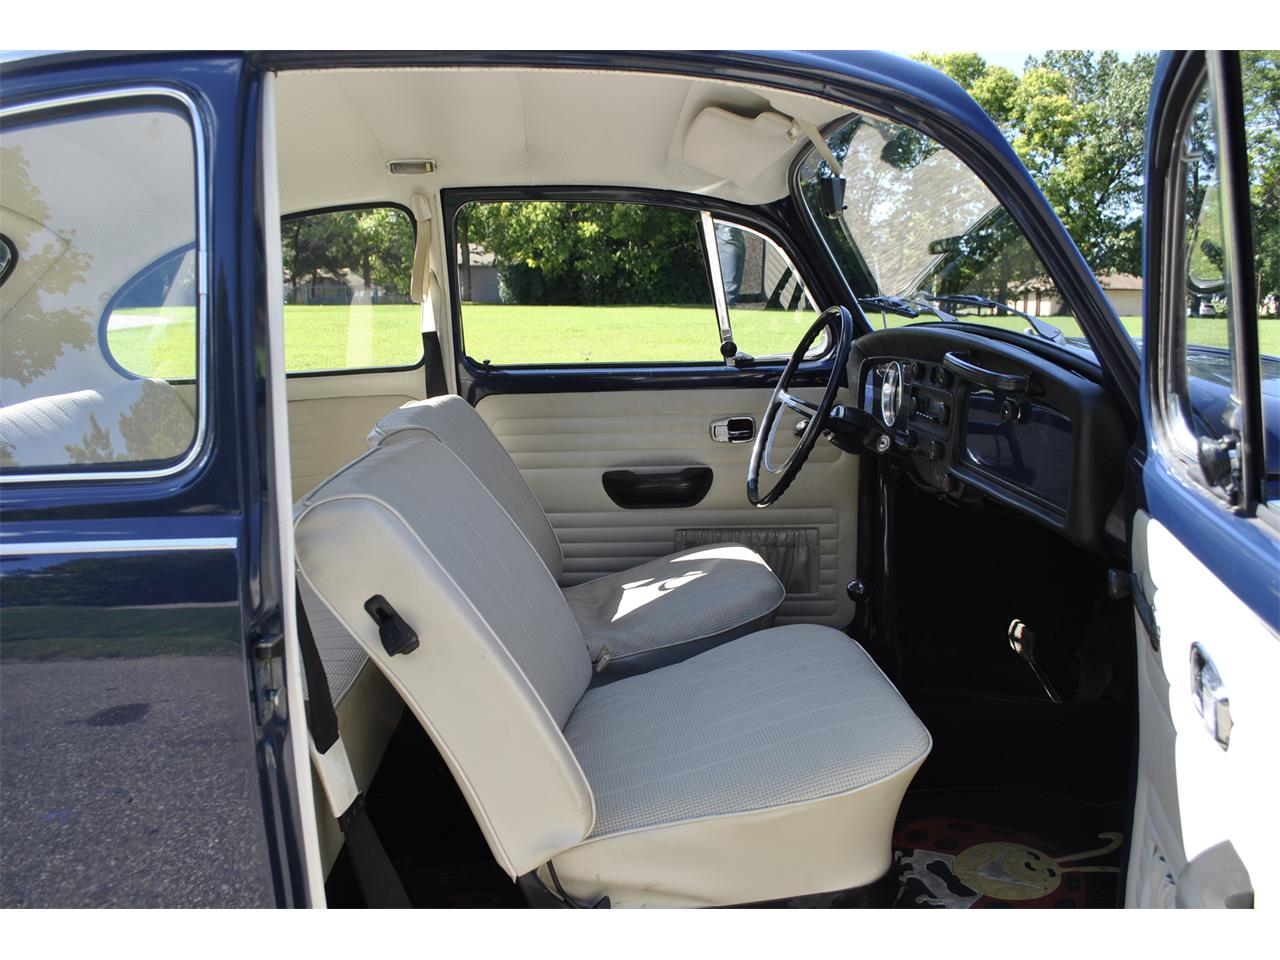 Large Picture of Classic '69 Volkswagen Beetle Auction Vehicle Offered by Earlywine Auctions - OP65